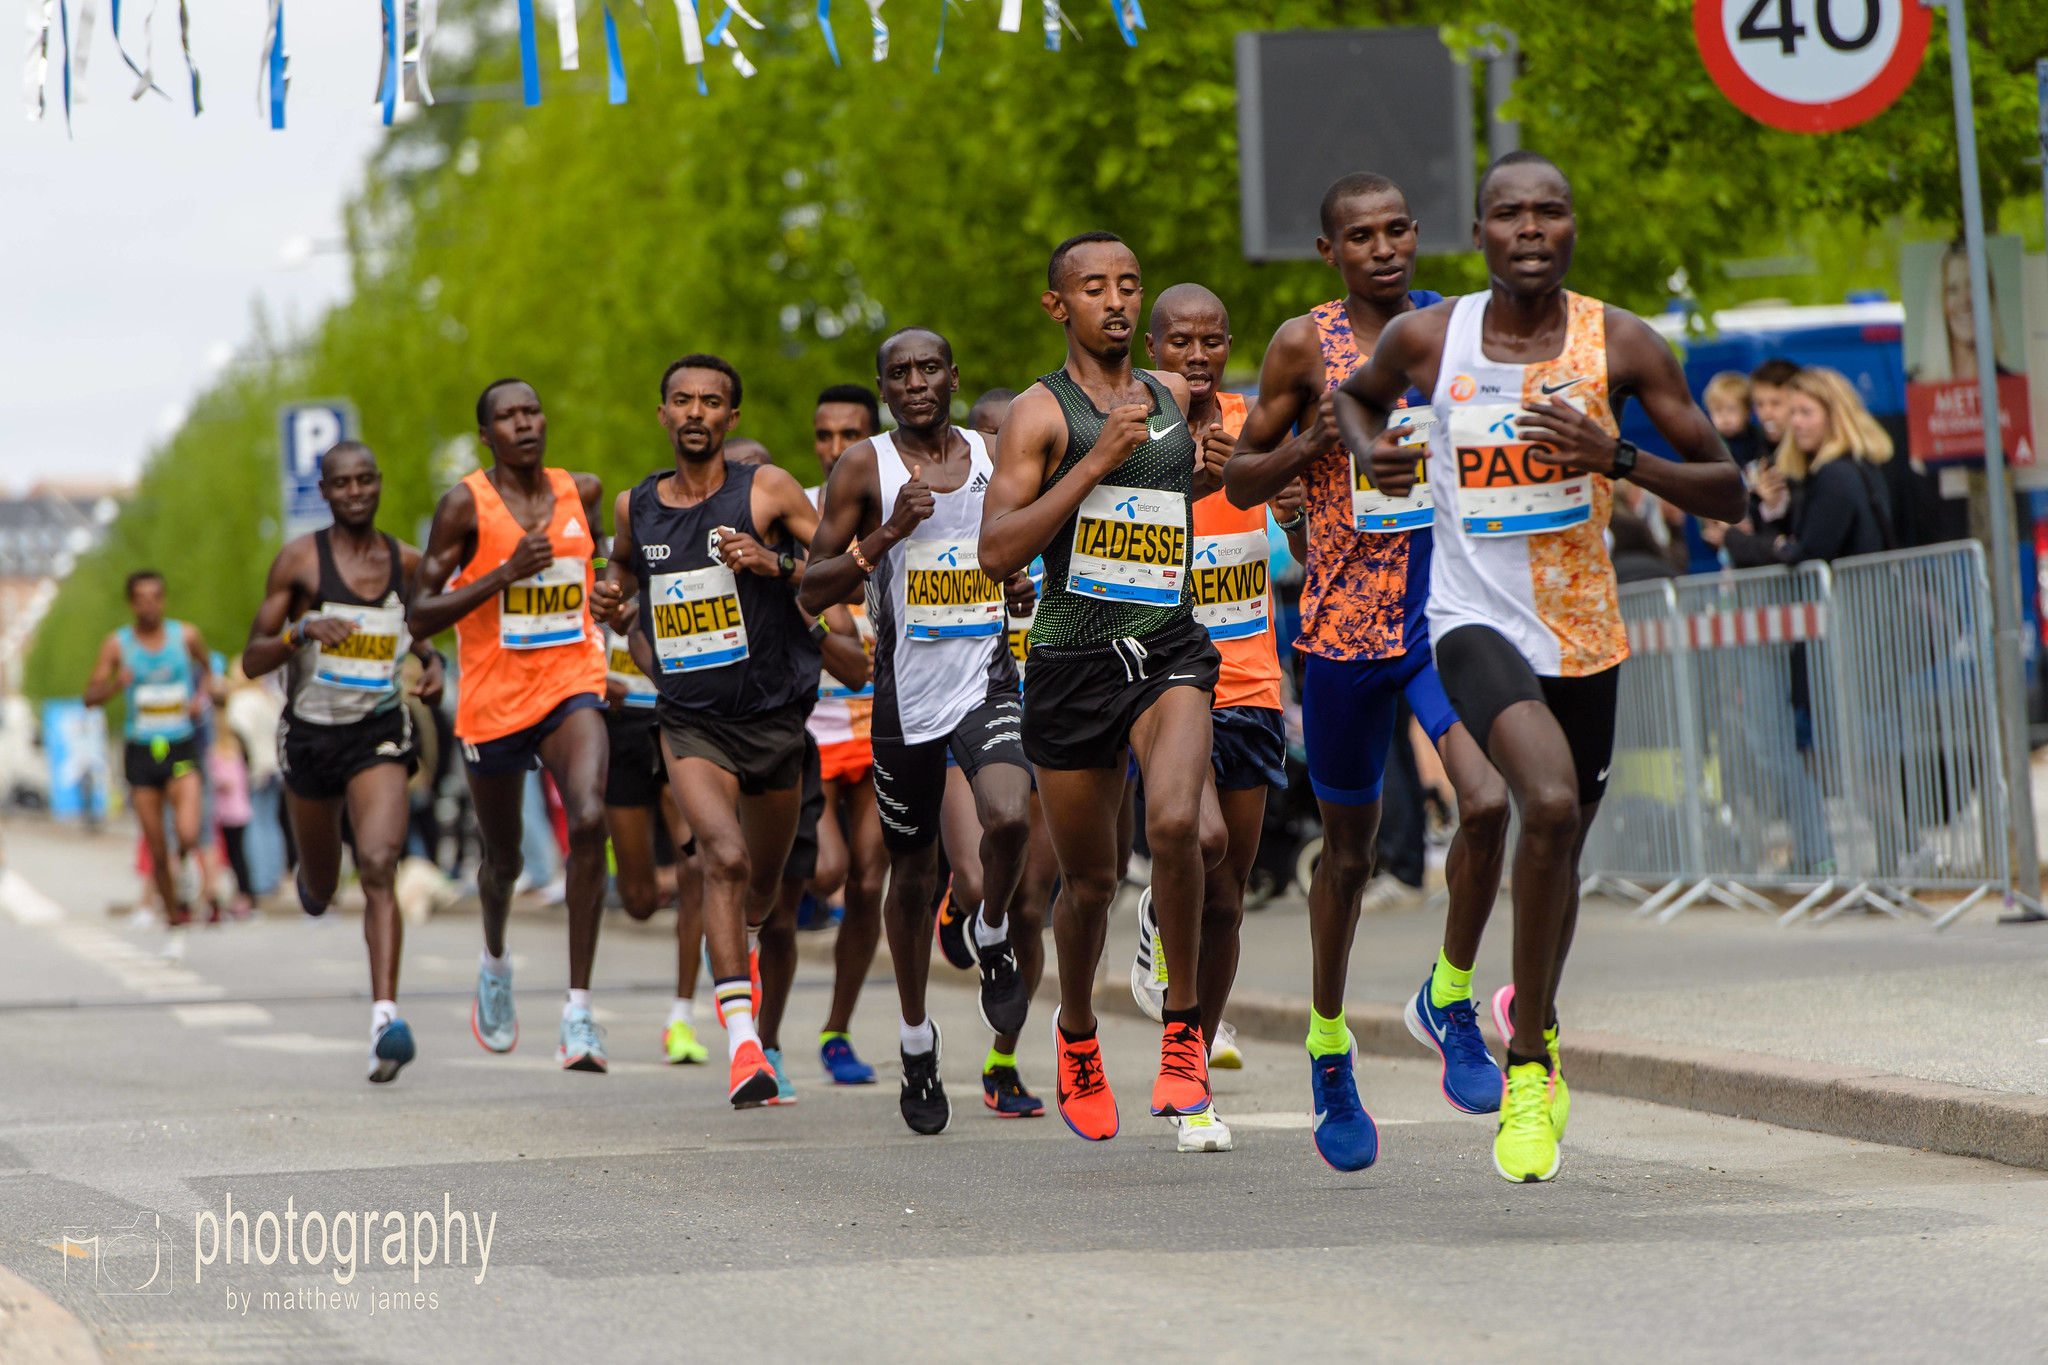 Records Fell At The 40th Telenor Copenhagen Marathon